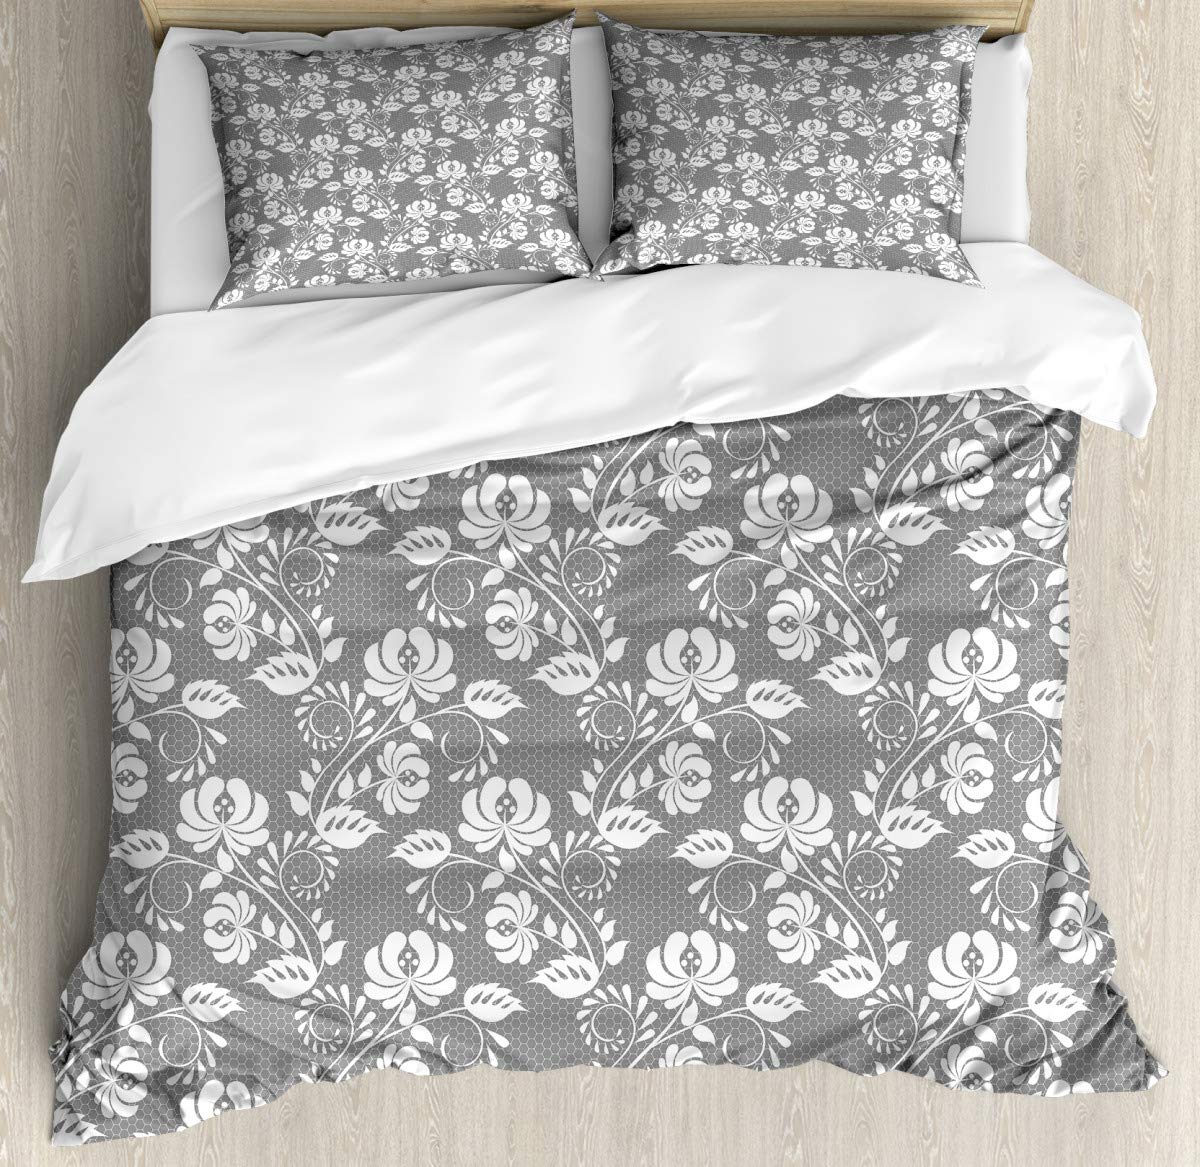 """Duvet Cover SetLeaves Swirls and Dots Duvet Cover SetDecorative 3 Piece Bedding Set with 2 Pillow Shams86 x102/19""""x29""""inch"""